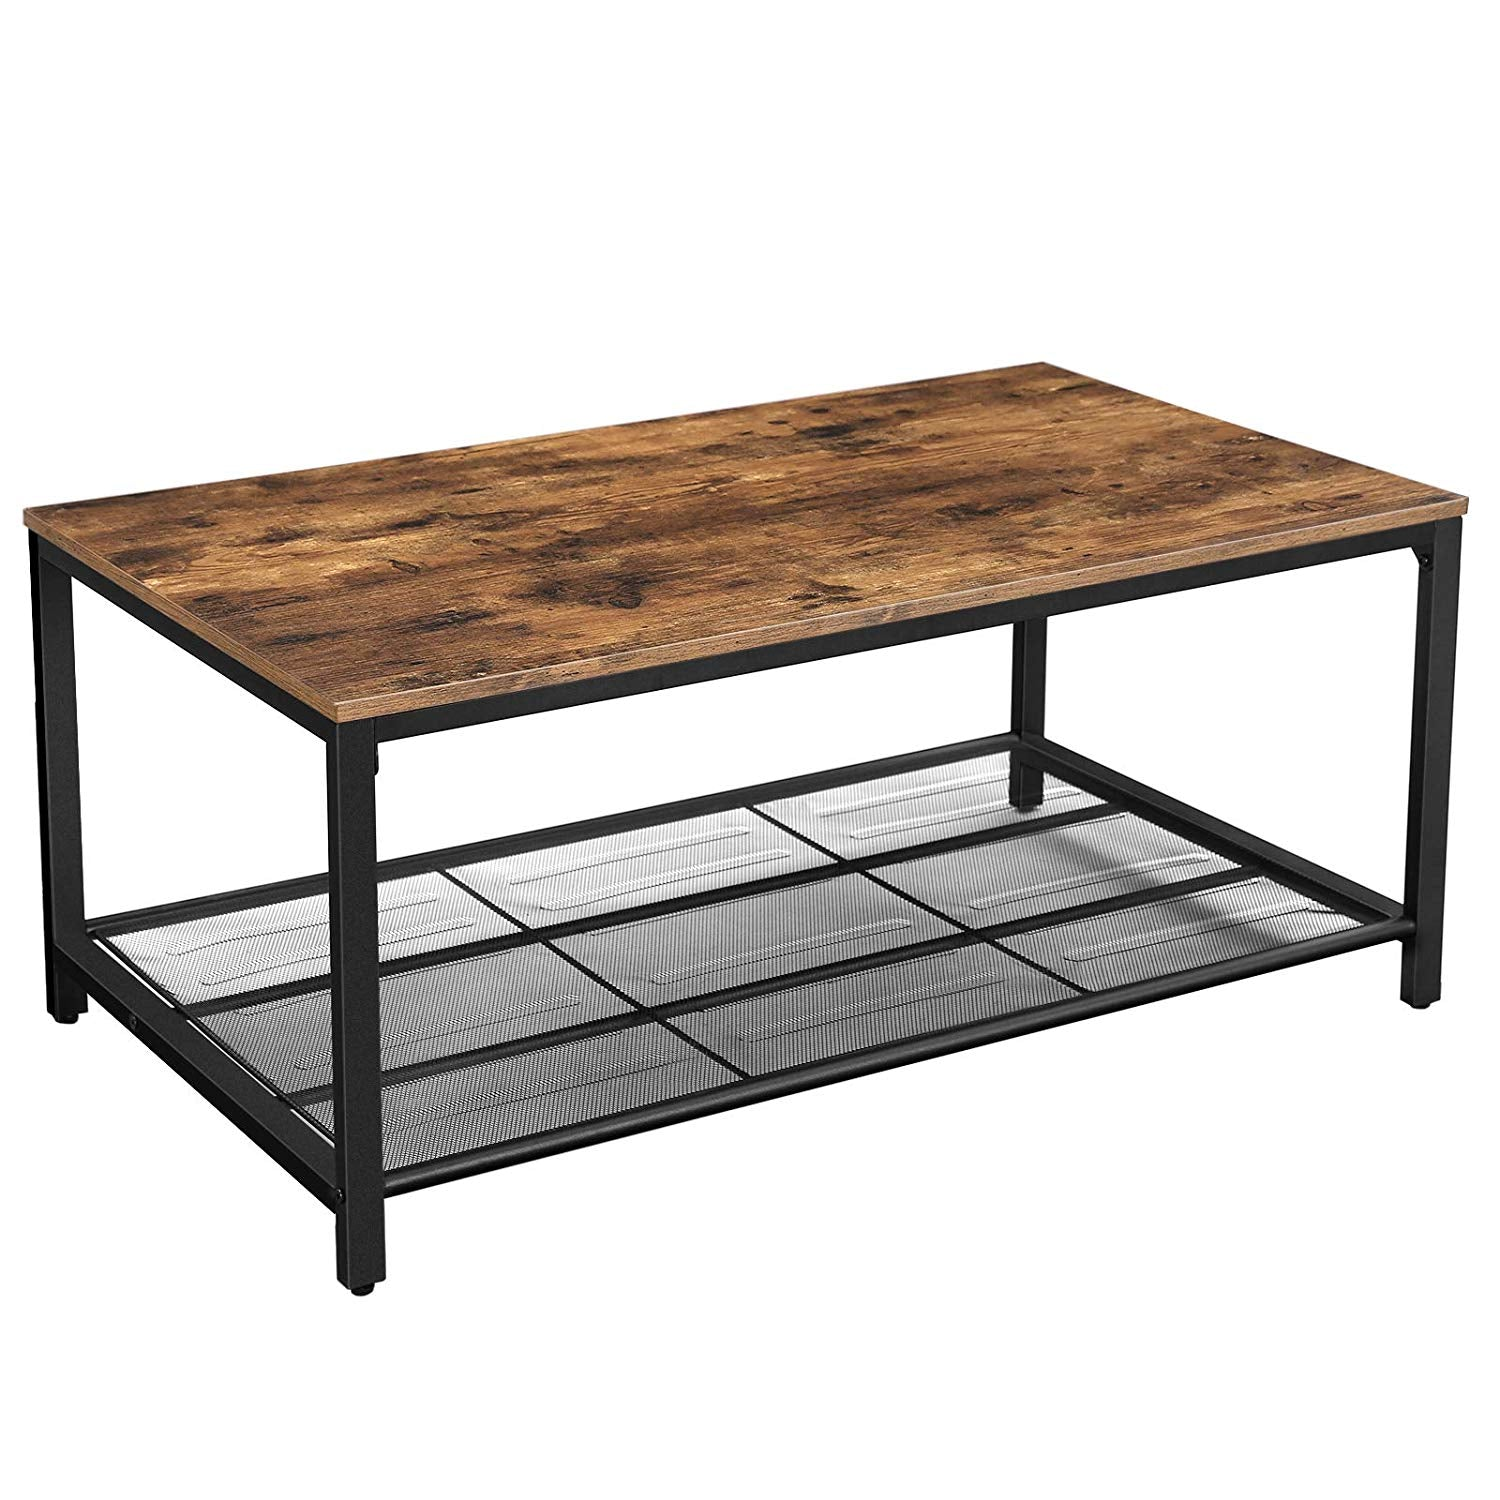 Enjoy fast, free nationwide shipping!  Owned by a husband and wife team of high-school music teachers, HawkinsWoodshop.com is your one stop shop for affordable furniture.  Shop HawkinsWoodshop.com for solid wood & metal modern, traditional, contemporary, industrial, custom, rustic, and farmhouse furniture including our Victor Industrial Coffee Table w/ Mesh Shelf.